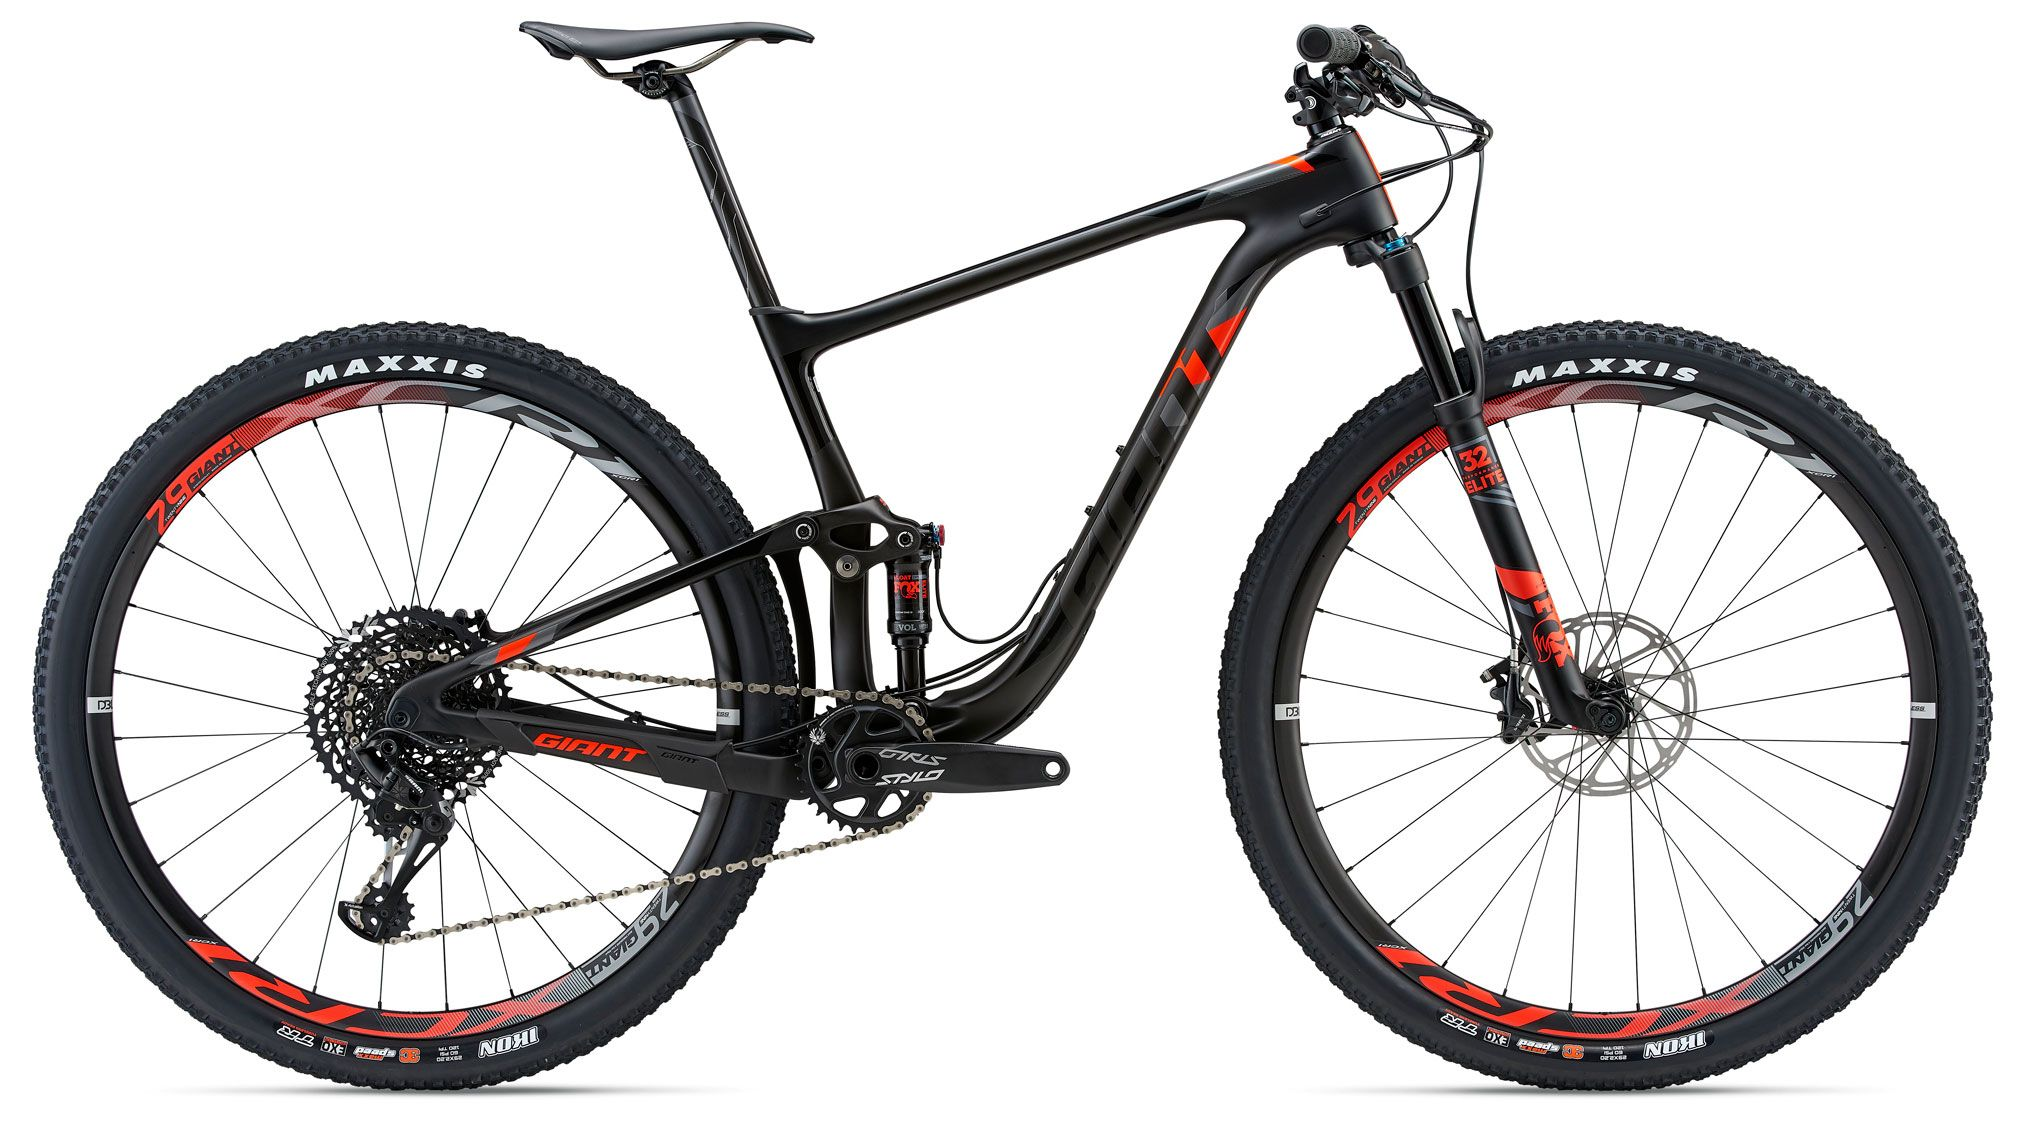 Велосипед Giant Anthem Advanced Pro 29er 1 2018 велосипед giant tcx 1 2013